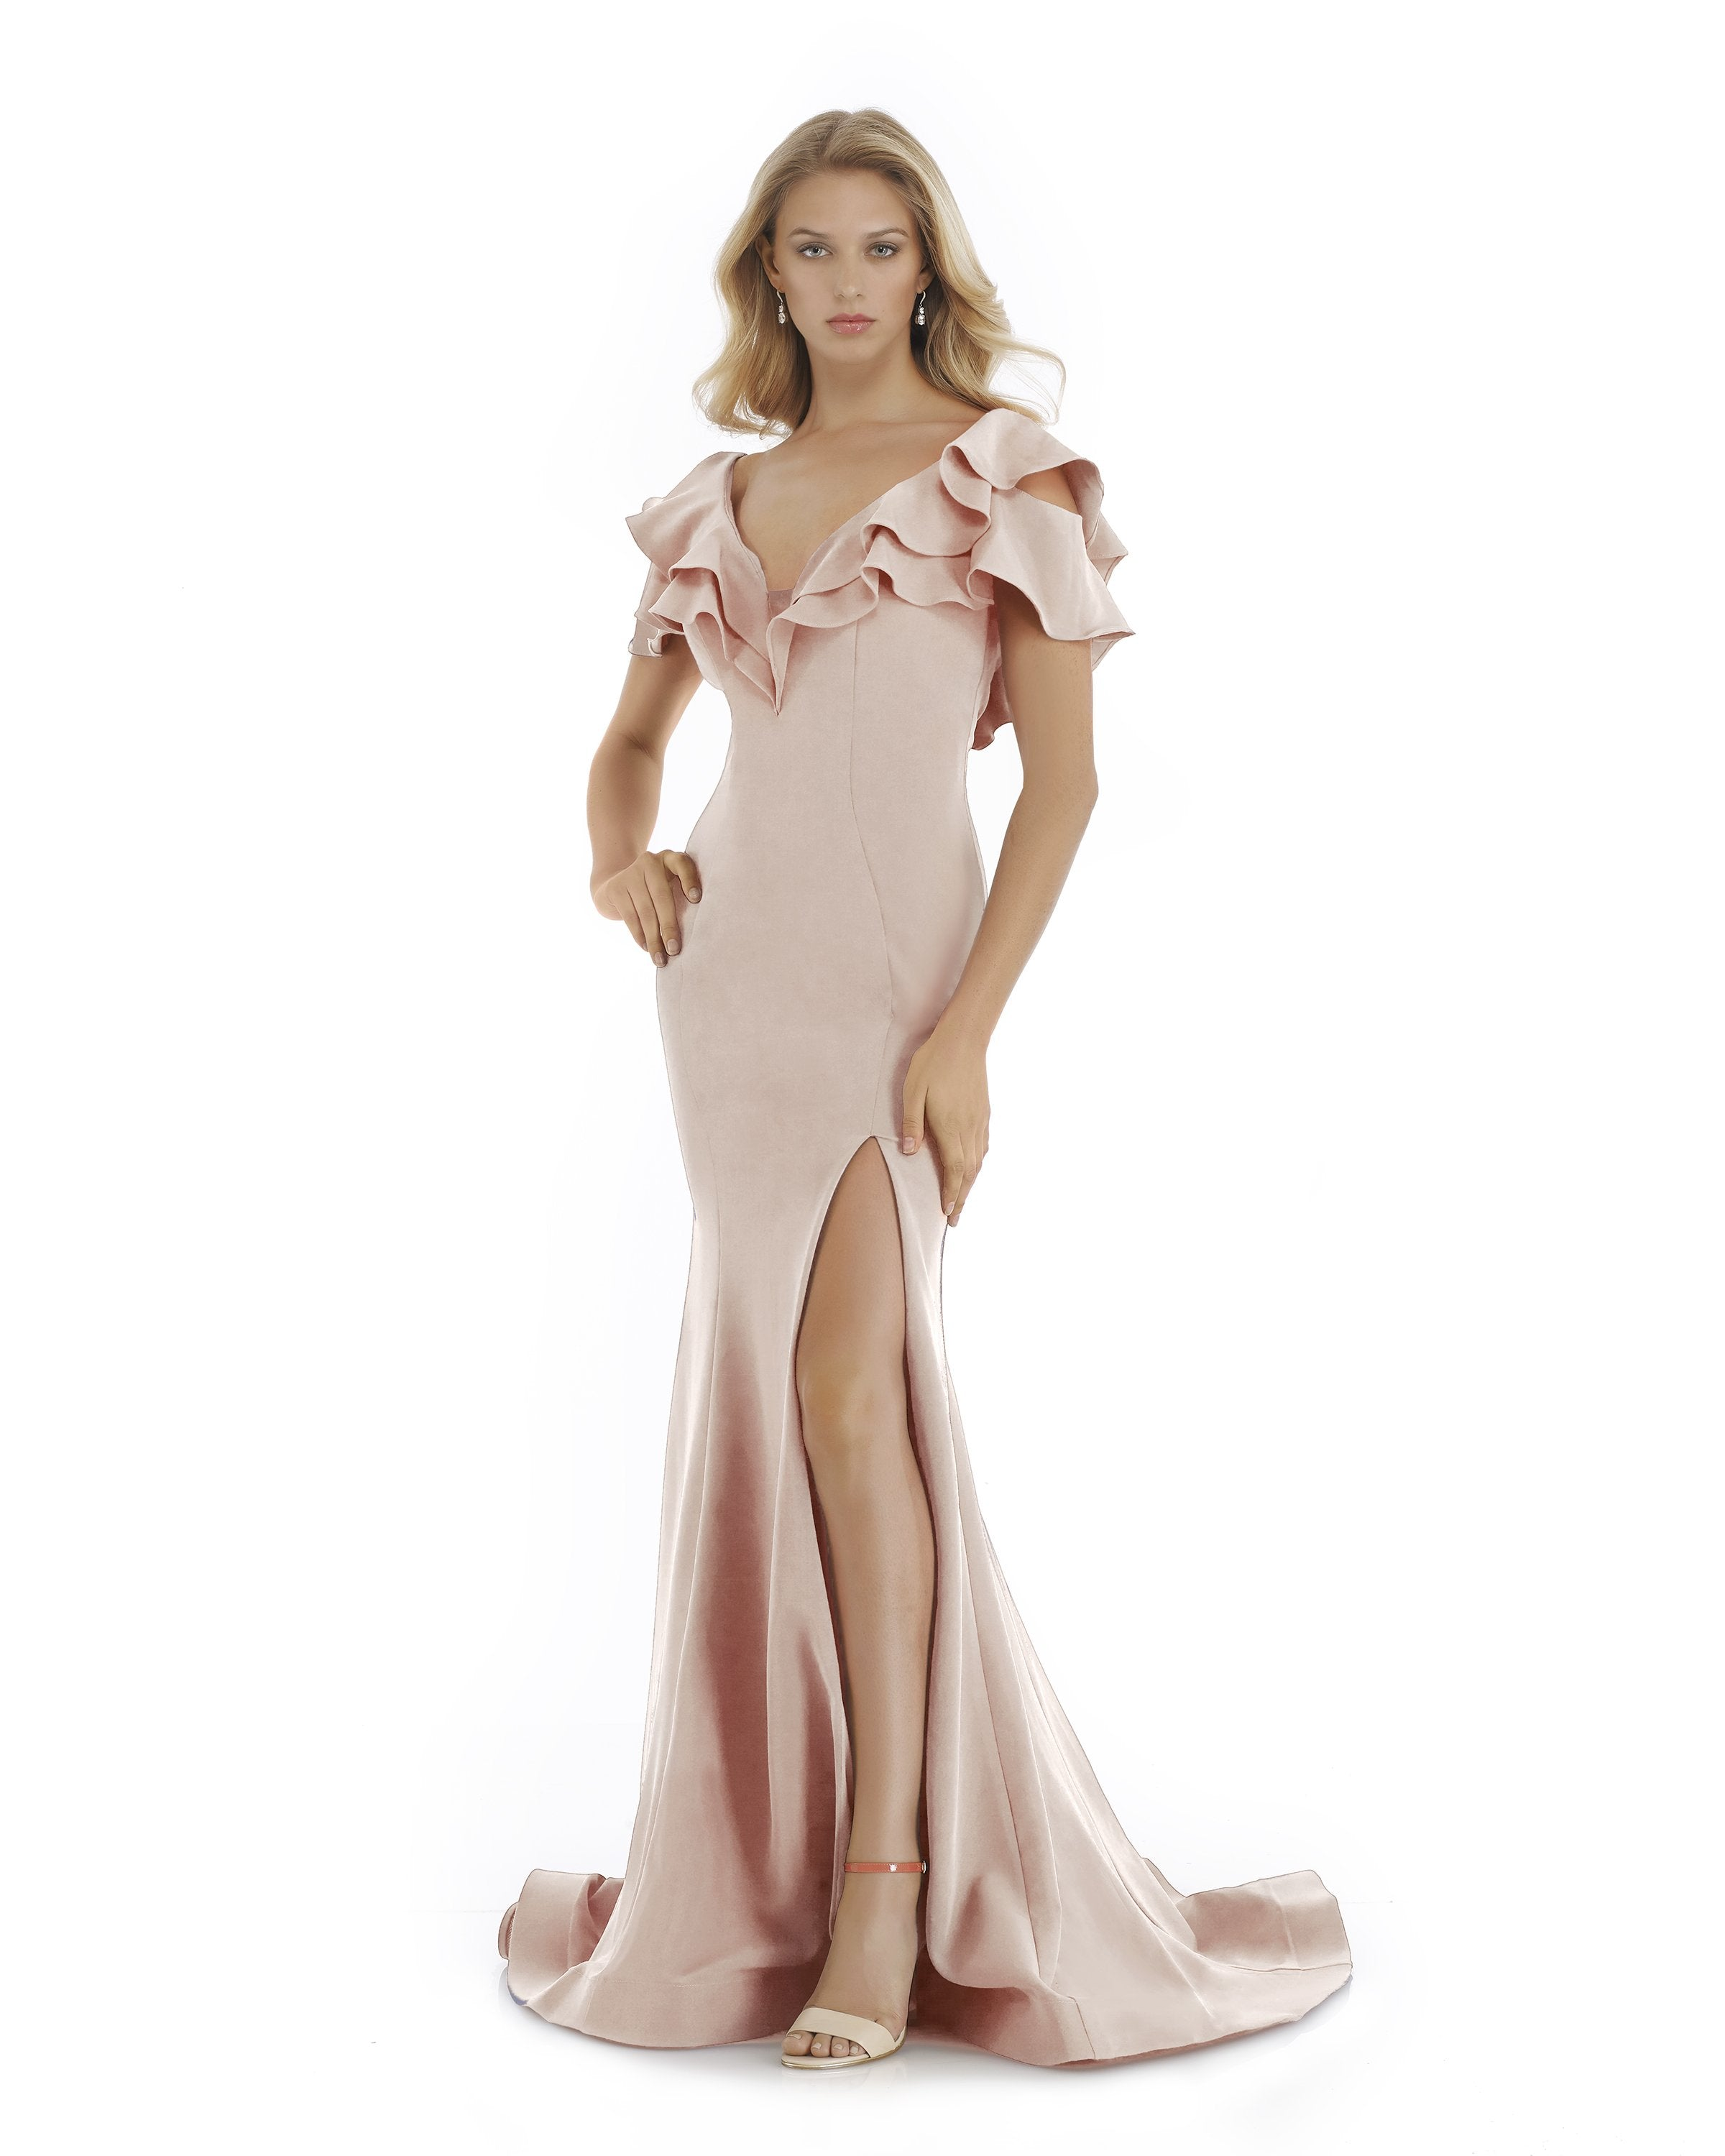 Morrell Maxie - 16064 Ruffled Plunging V-neck Mermaid Dress in Pink